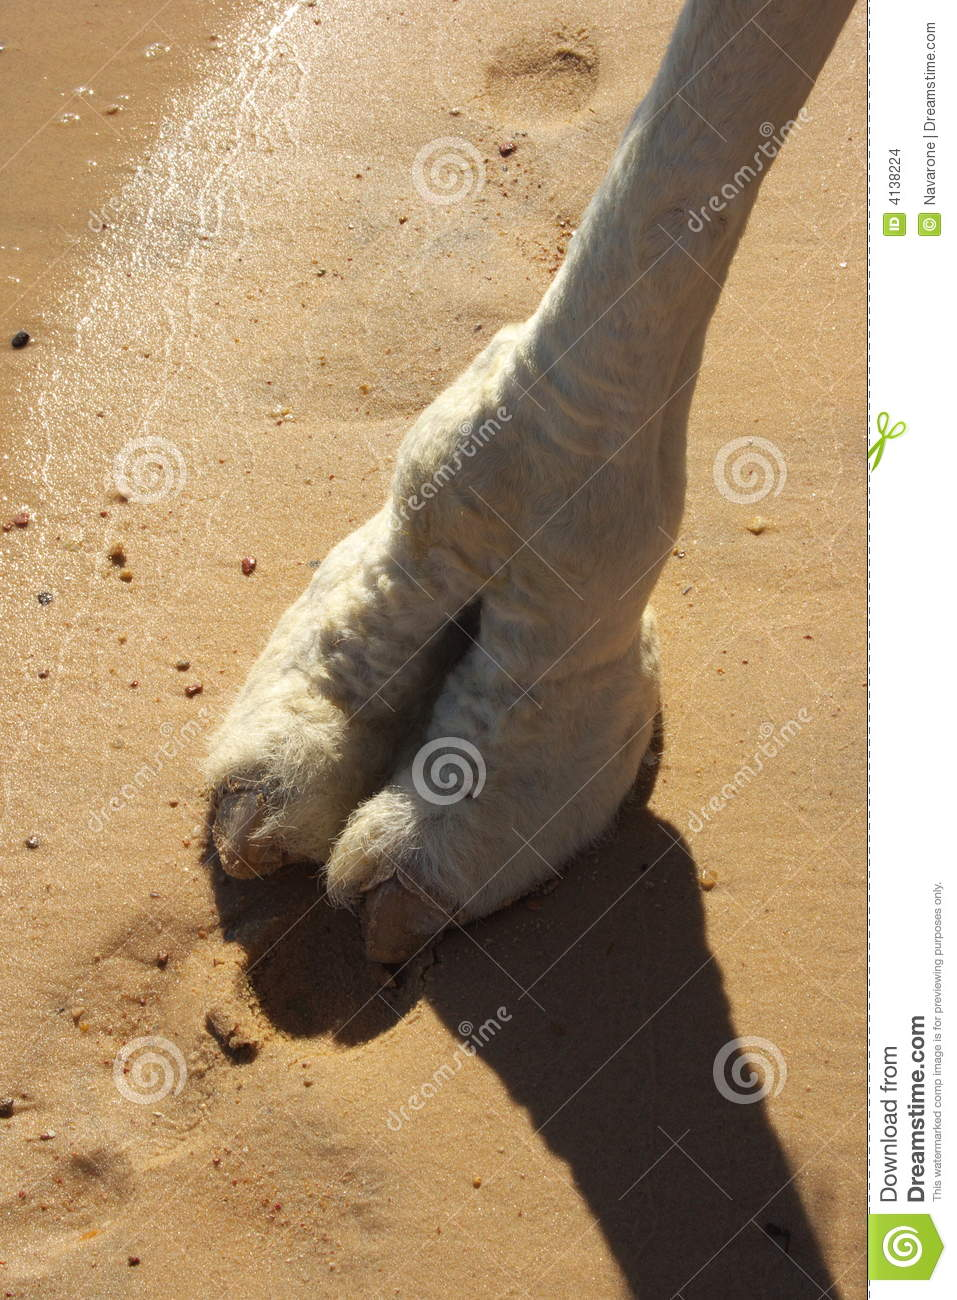 What Is The Difference Between Contemporary And Modern Interior Design: Camel Foot Stock Images